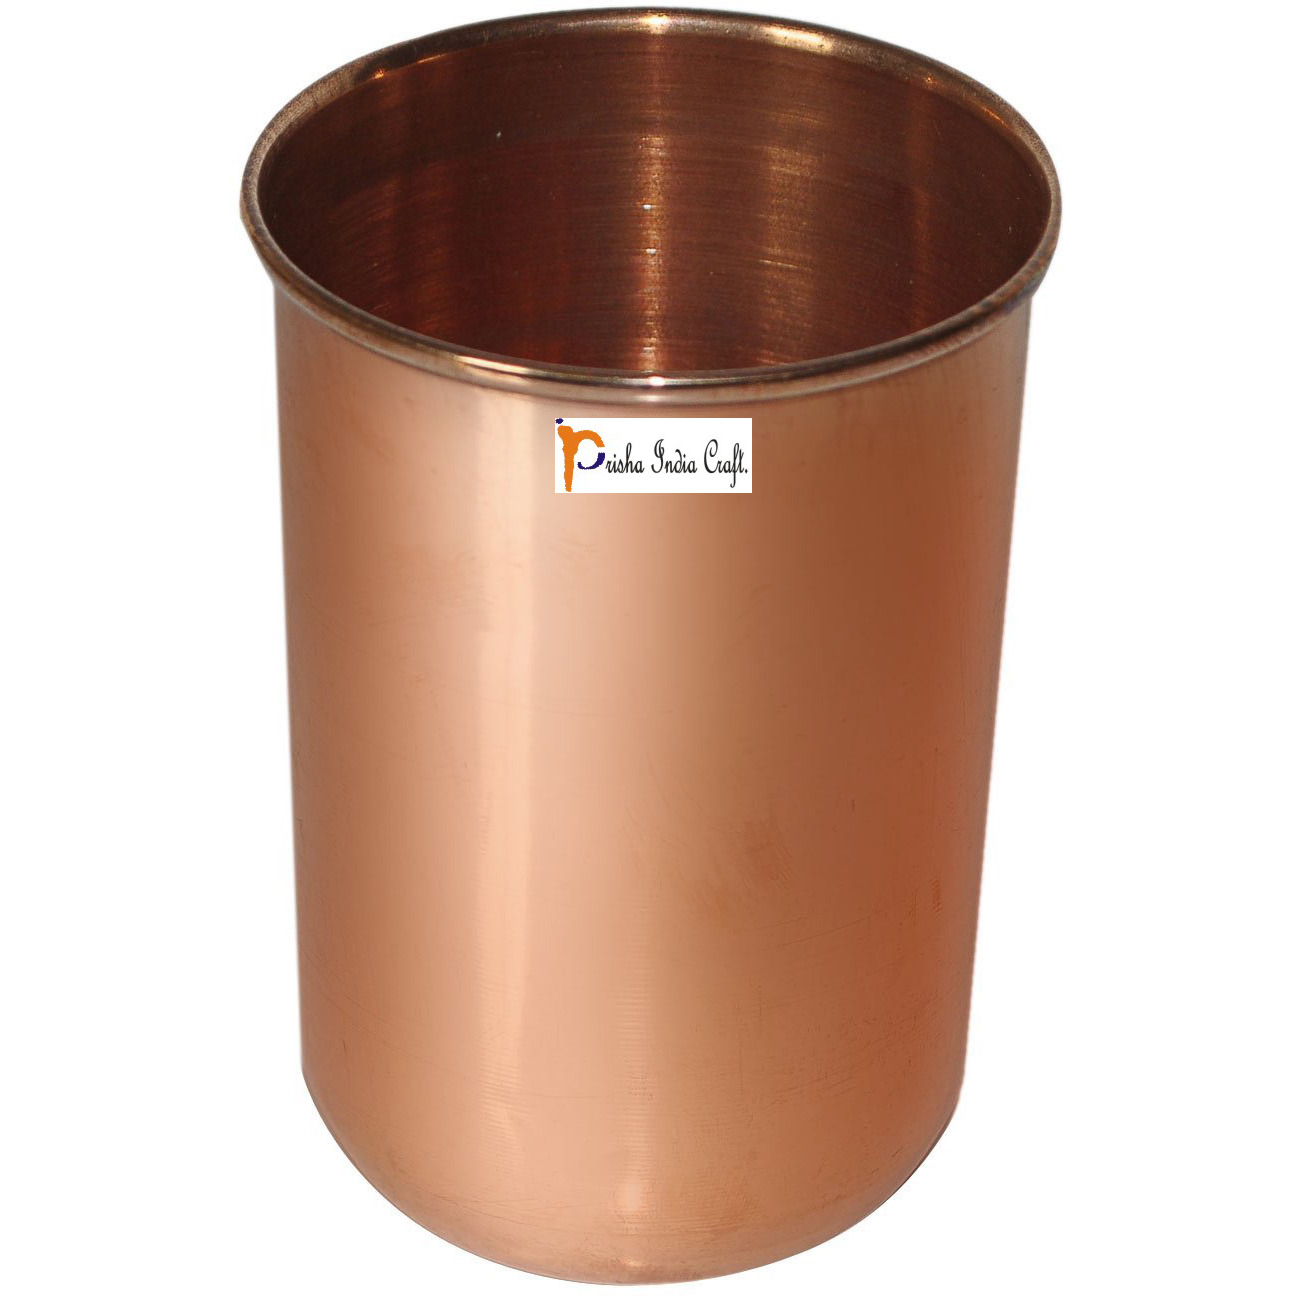 Set of 6 - Prisha India Craft B. Pure Copper Glass Cup for Water - Handmade Water Glasses - Traveller's Copper Mug for Ayurveda Benefits